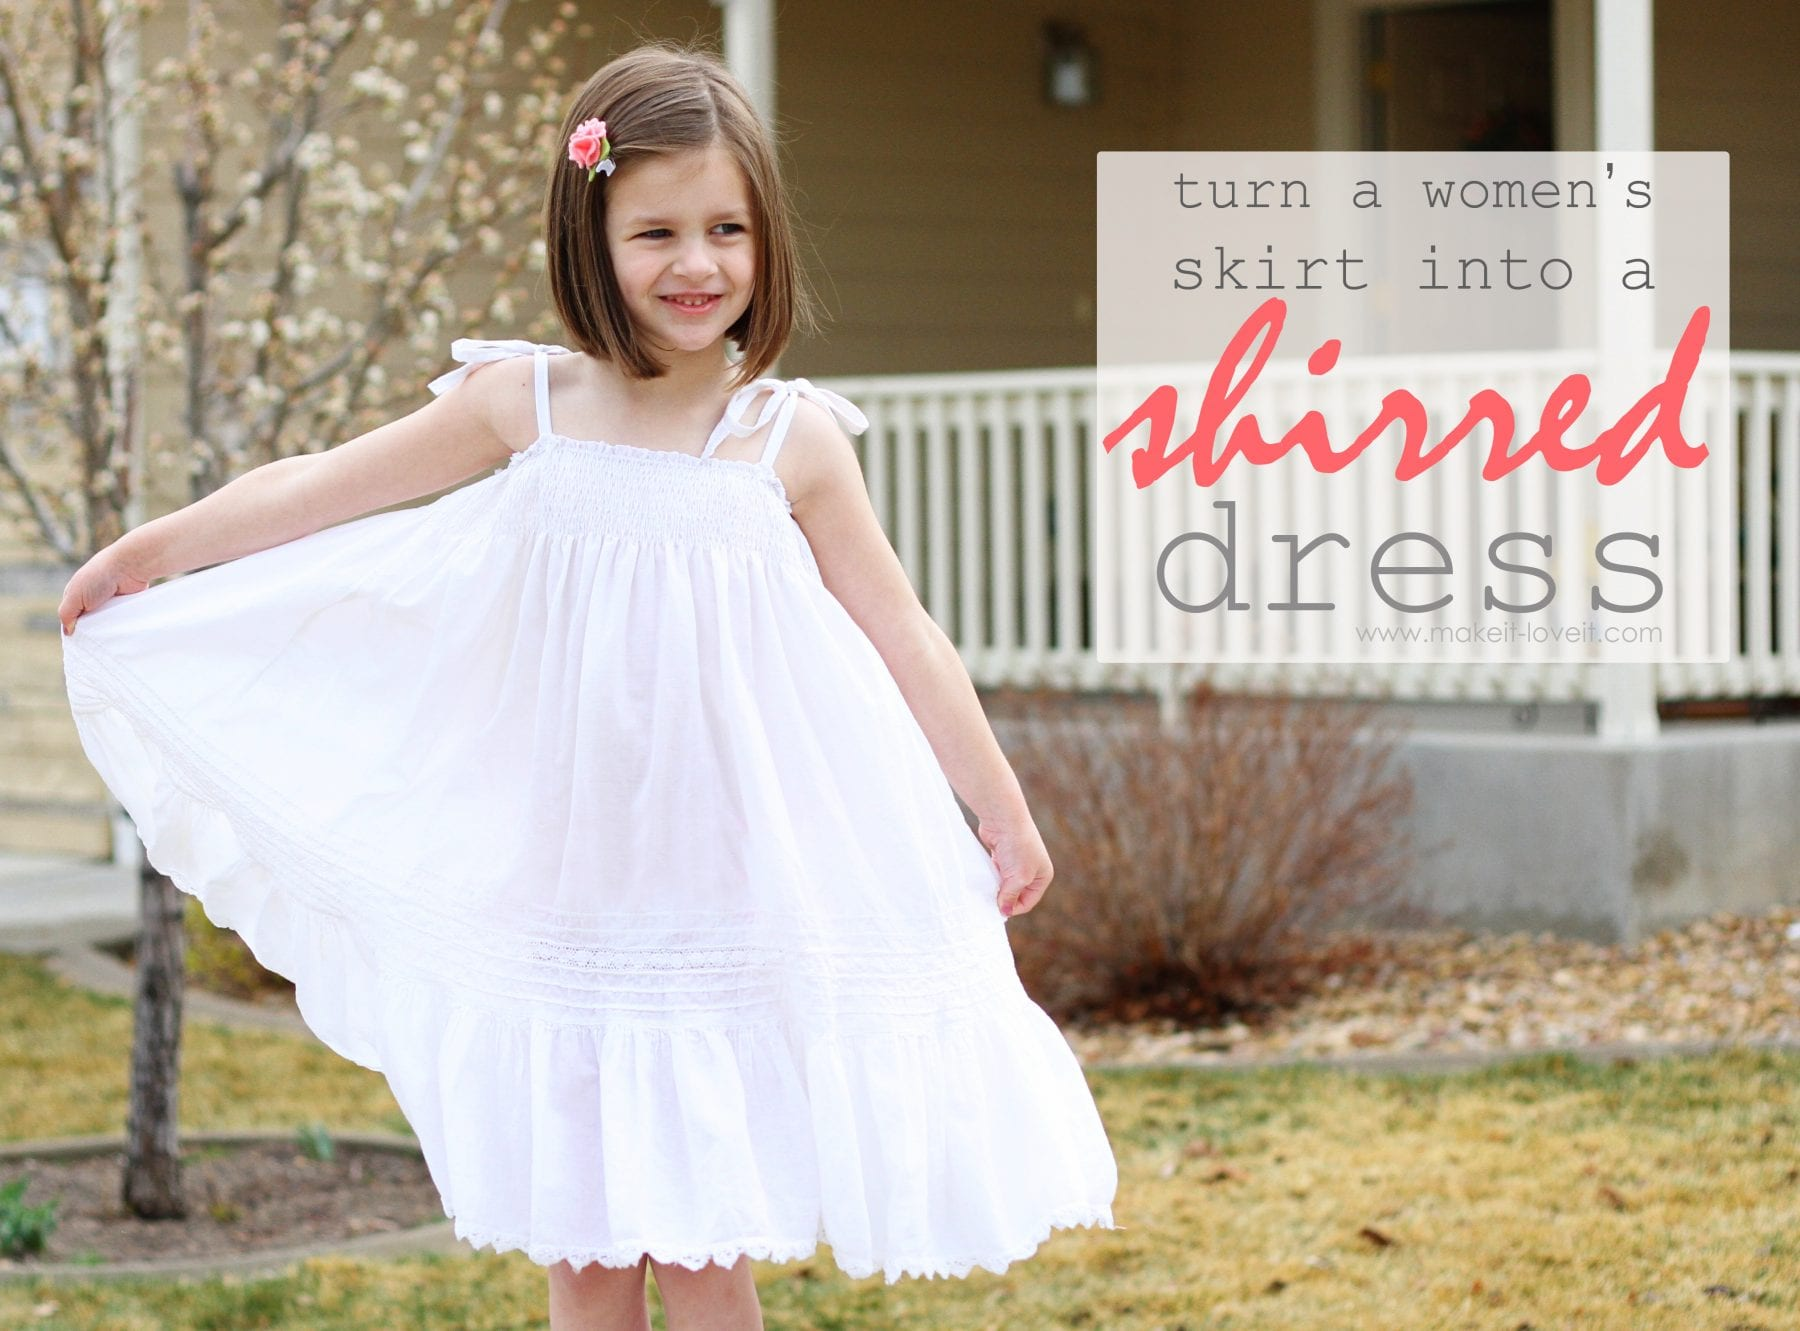 Re-purposing: Women's Skirt into a Girl's Shirred Dress